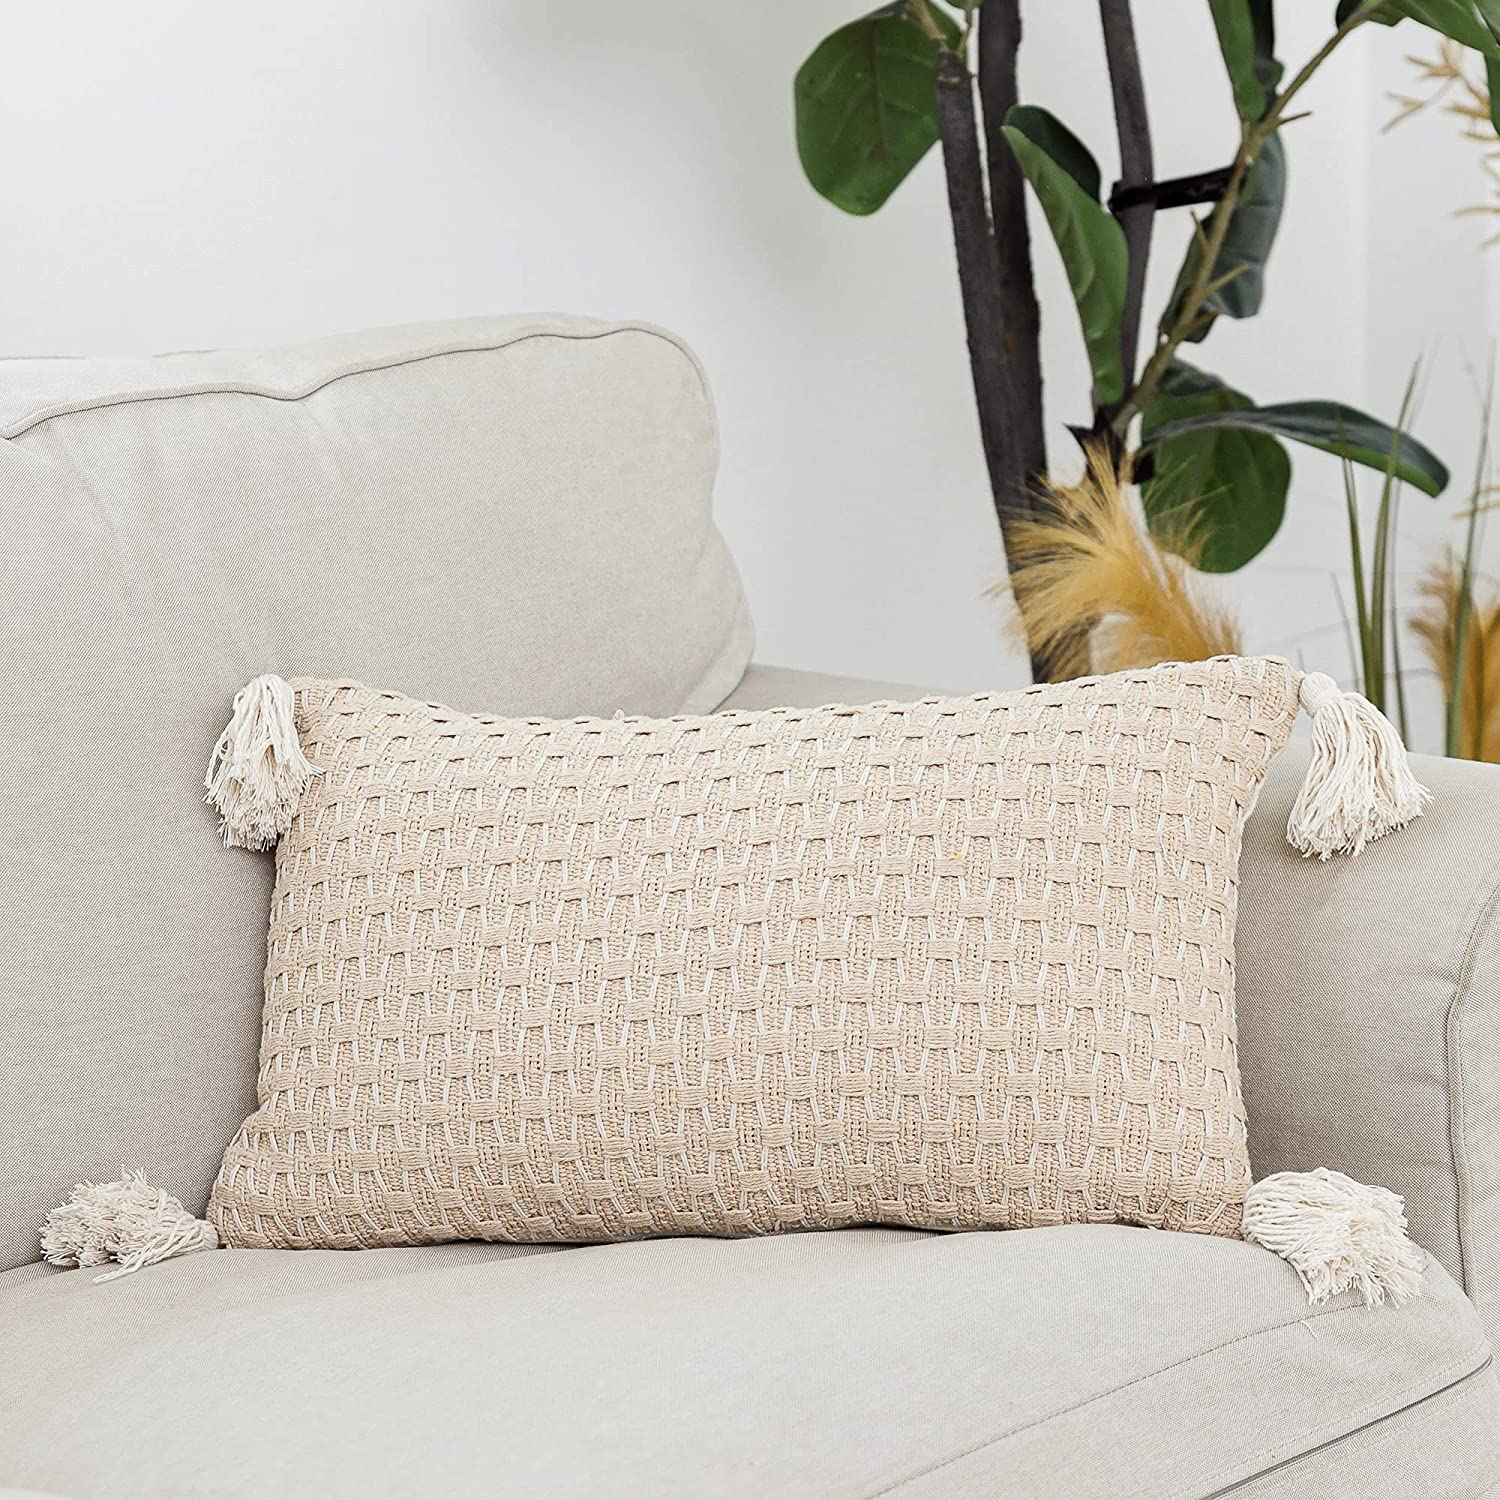 Snugtown Excellence Farmhouse New color Decor Throw Lumbar Tassels Pillow Cover with